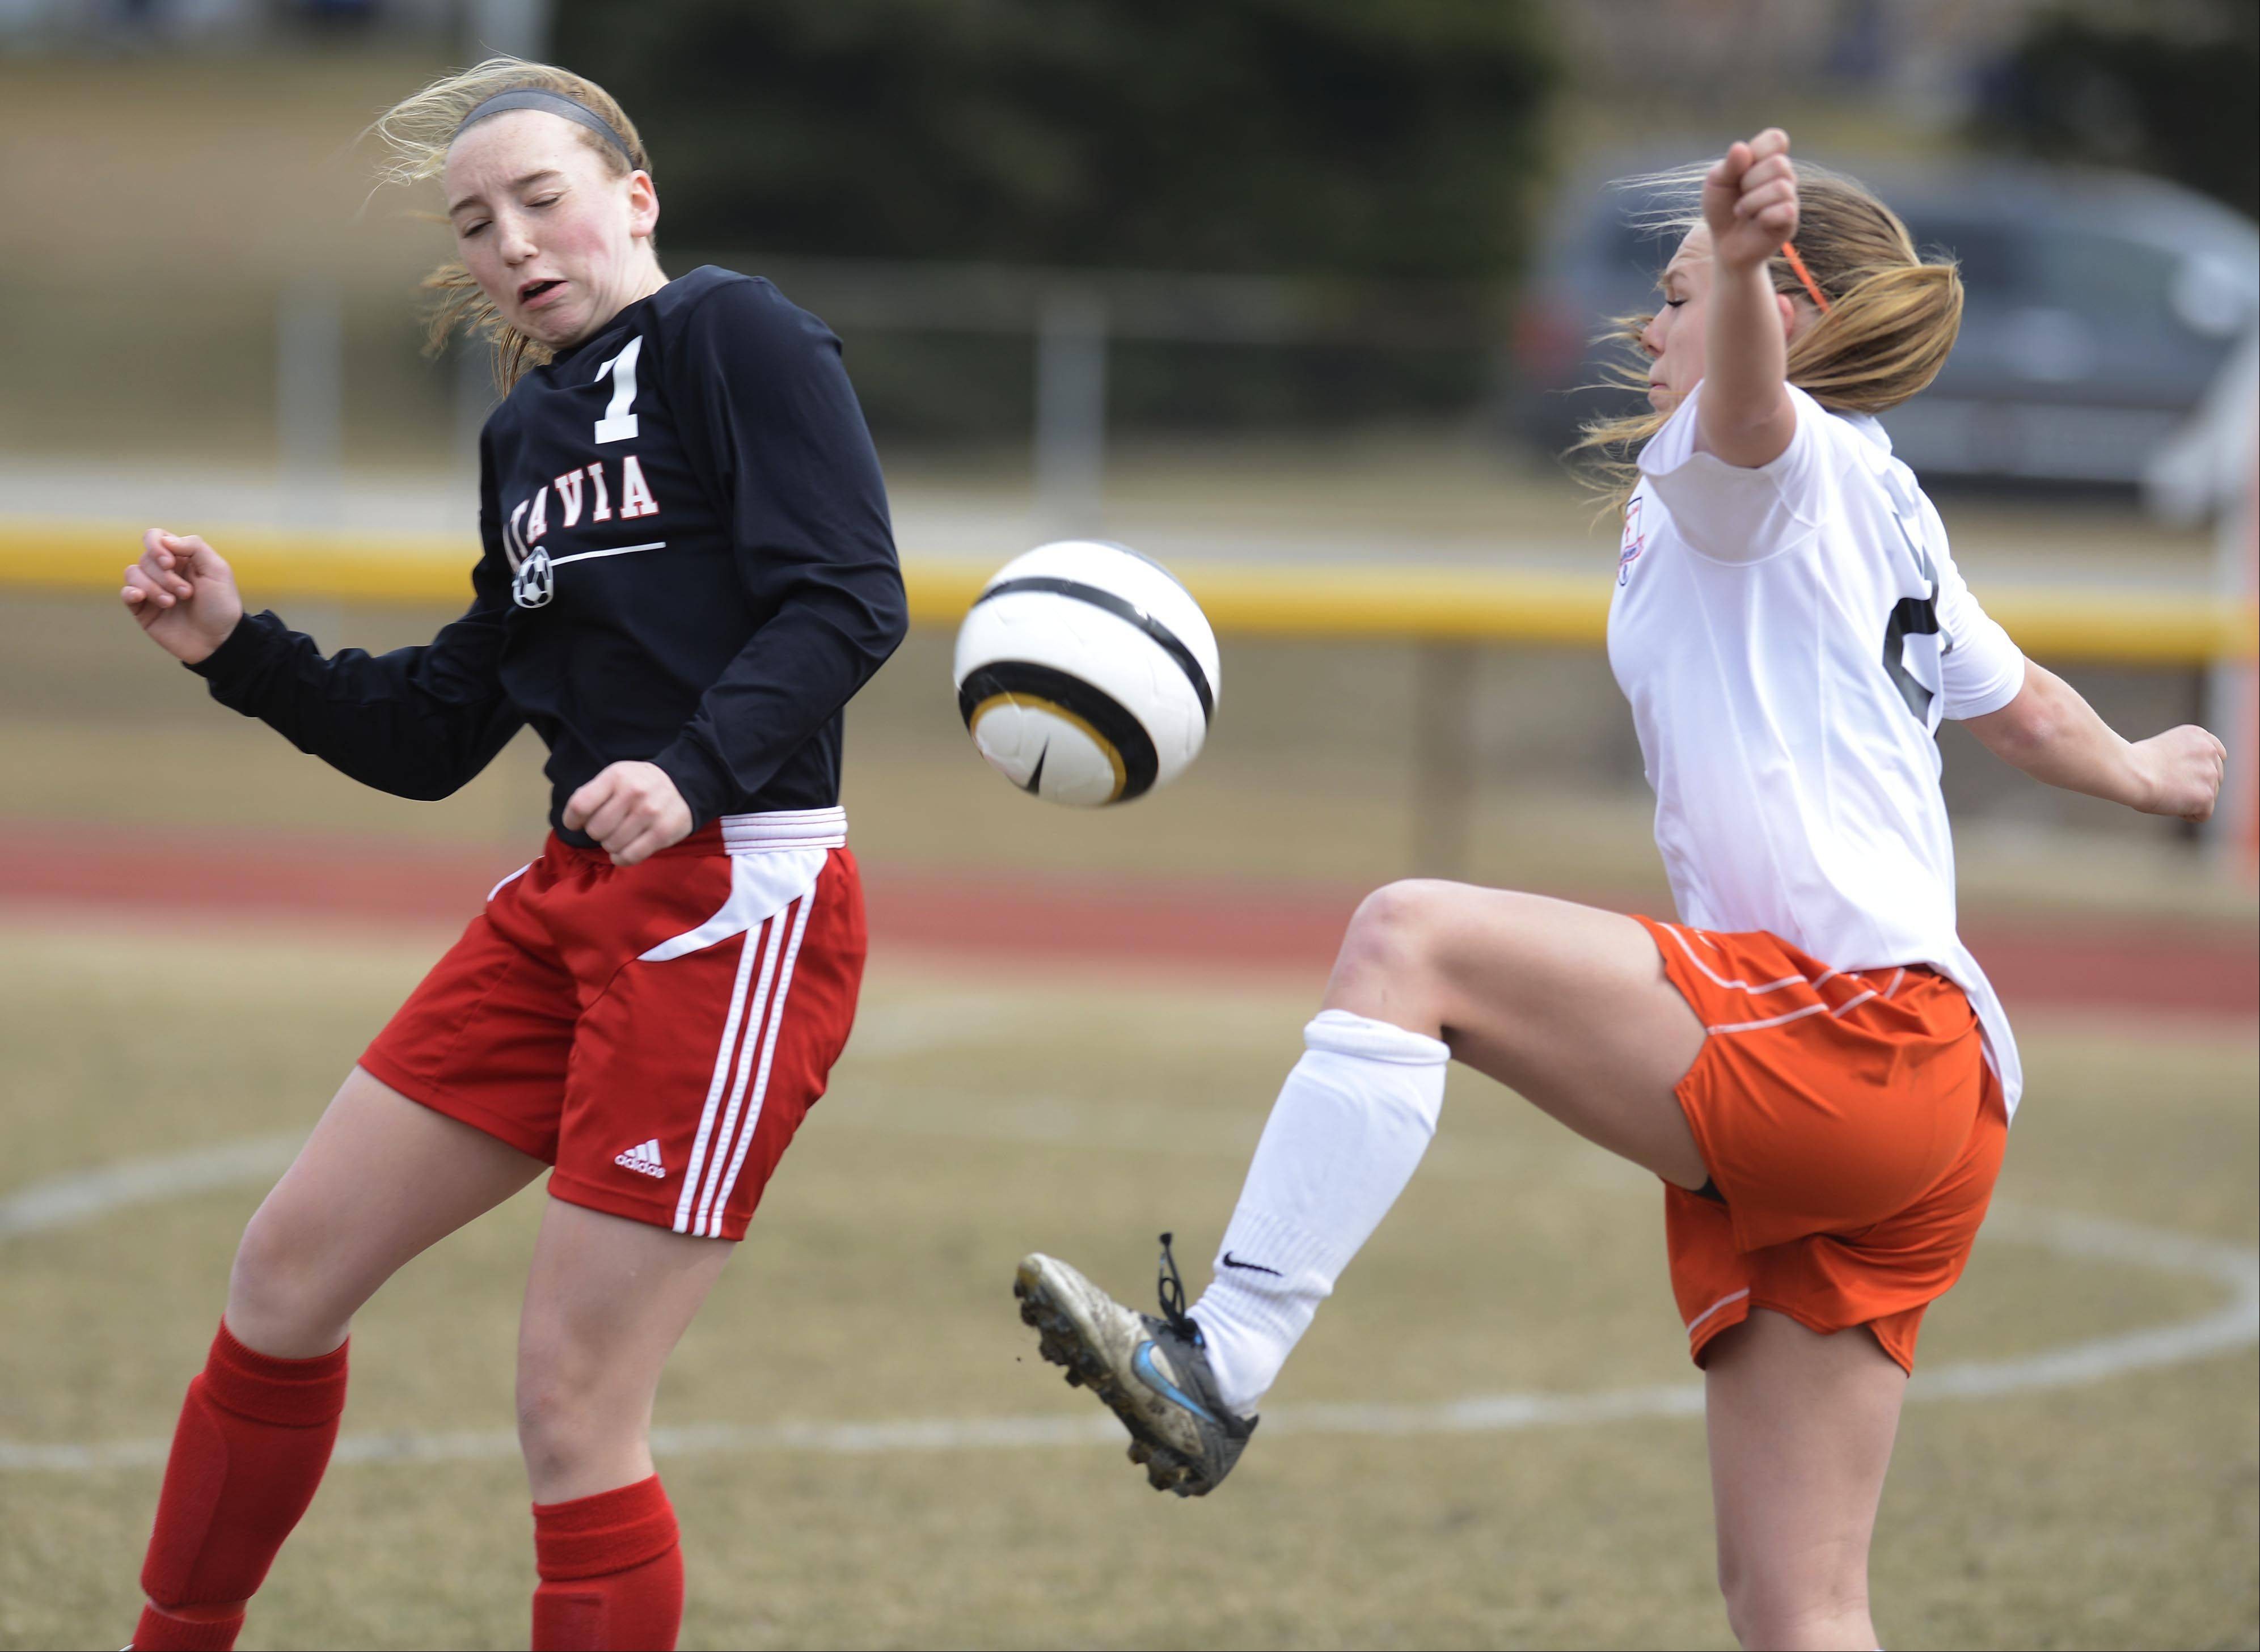 The ball gets between Batavia's Alexis Bryl, left, and St. Charles East's Amanda Hilton during Saturday's game.